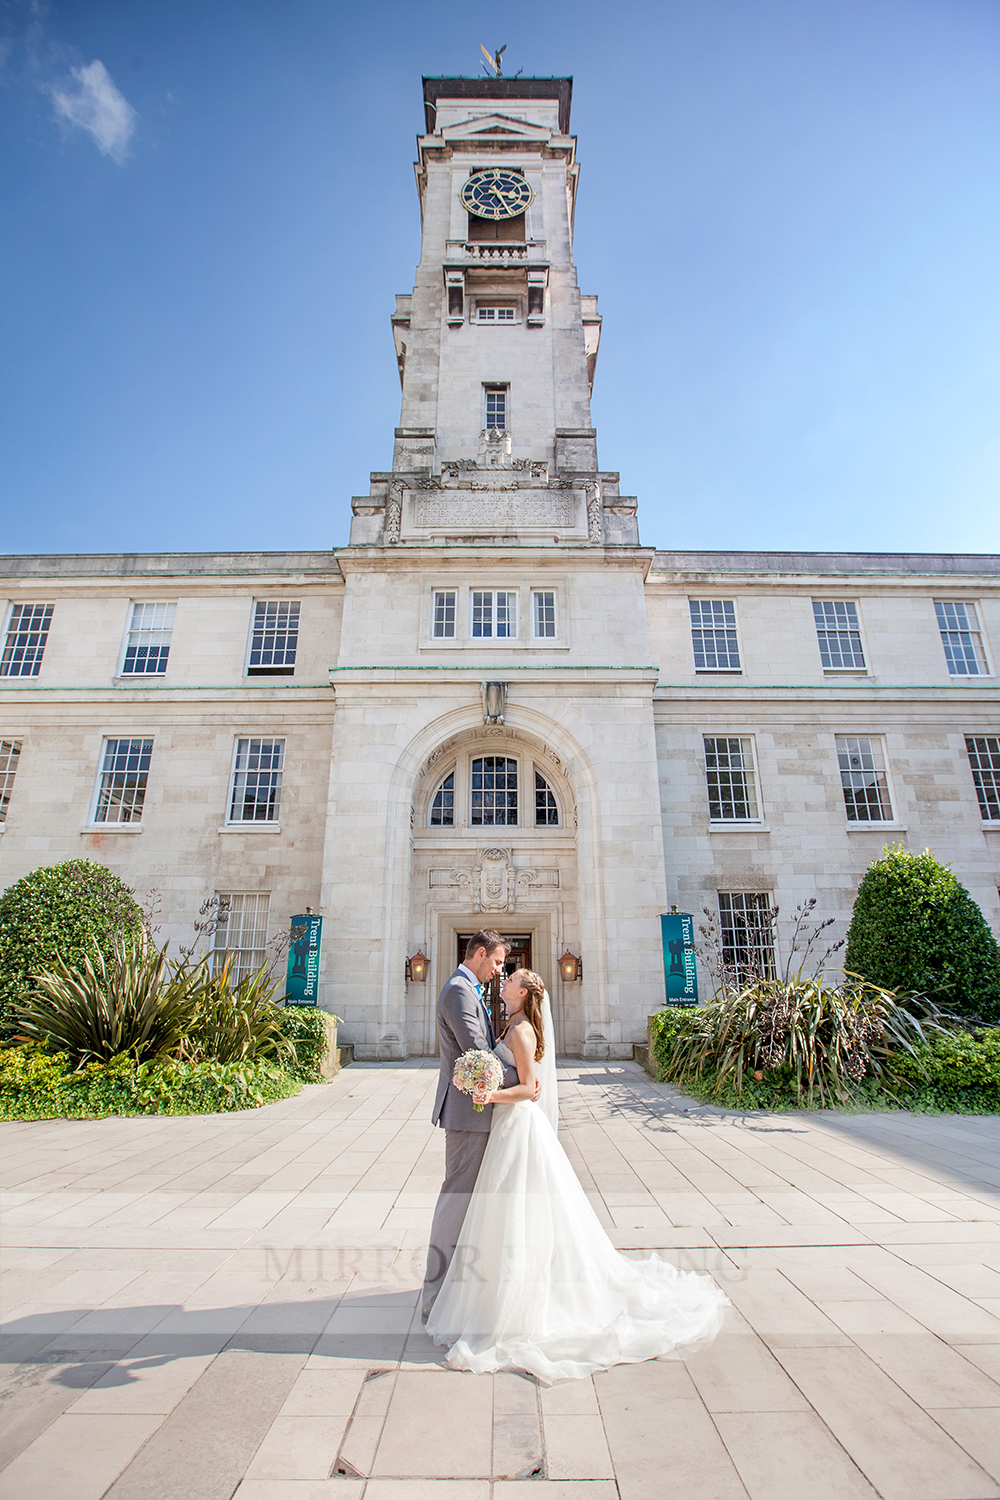 wedding photographers nottingham 48.jpg